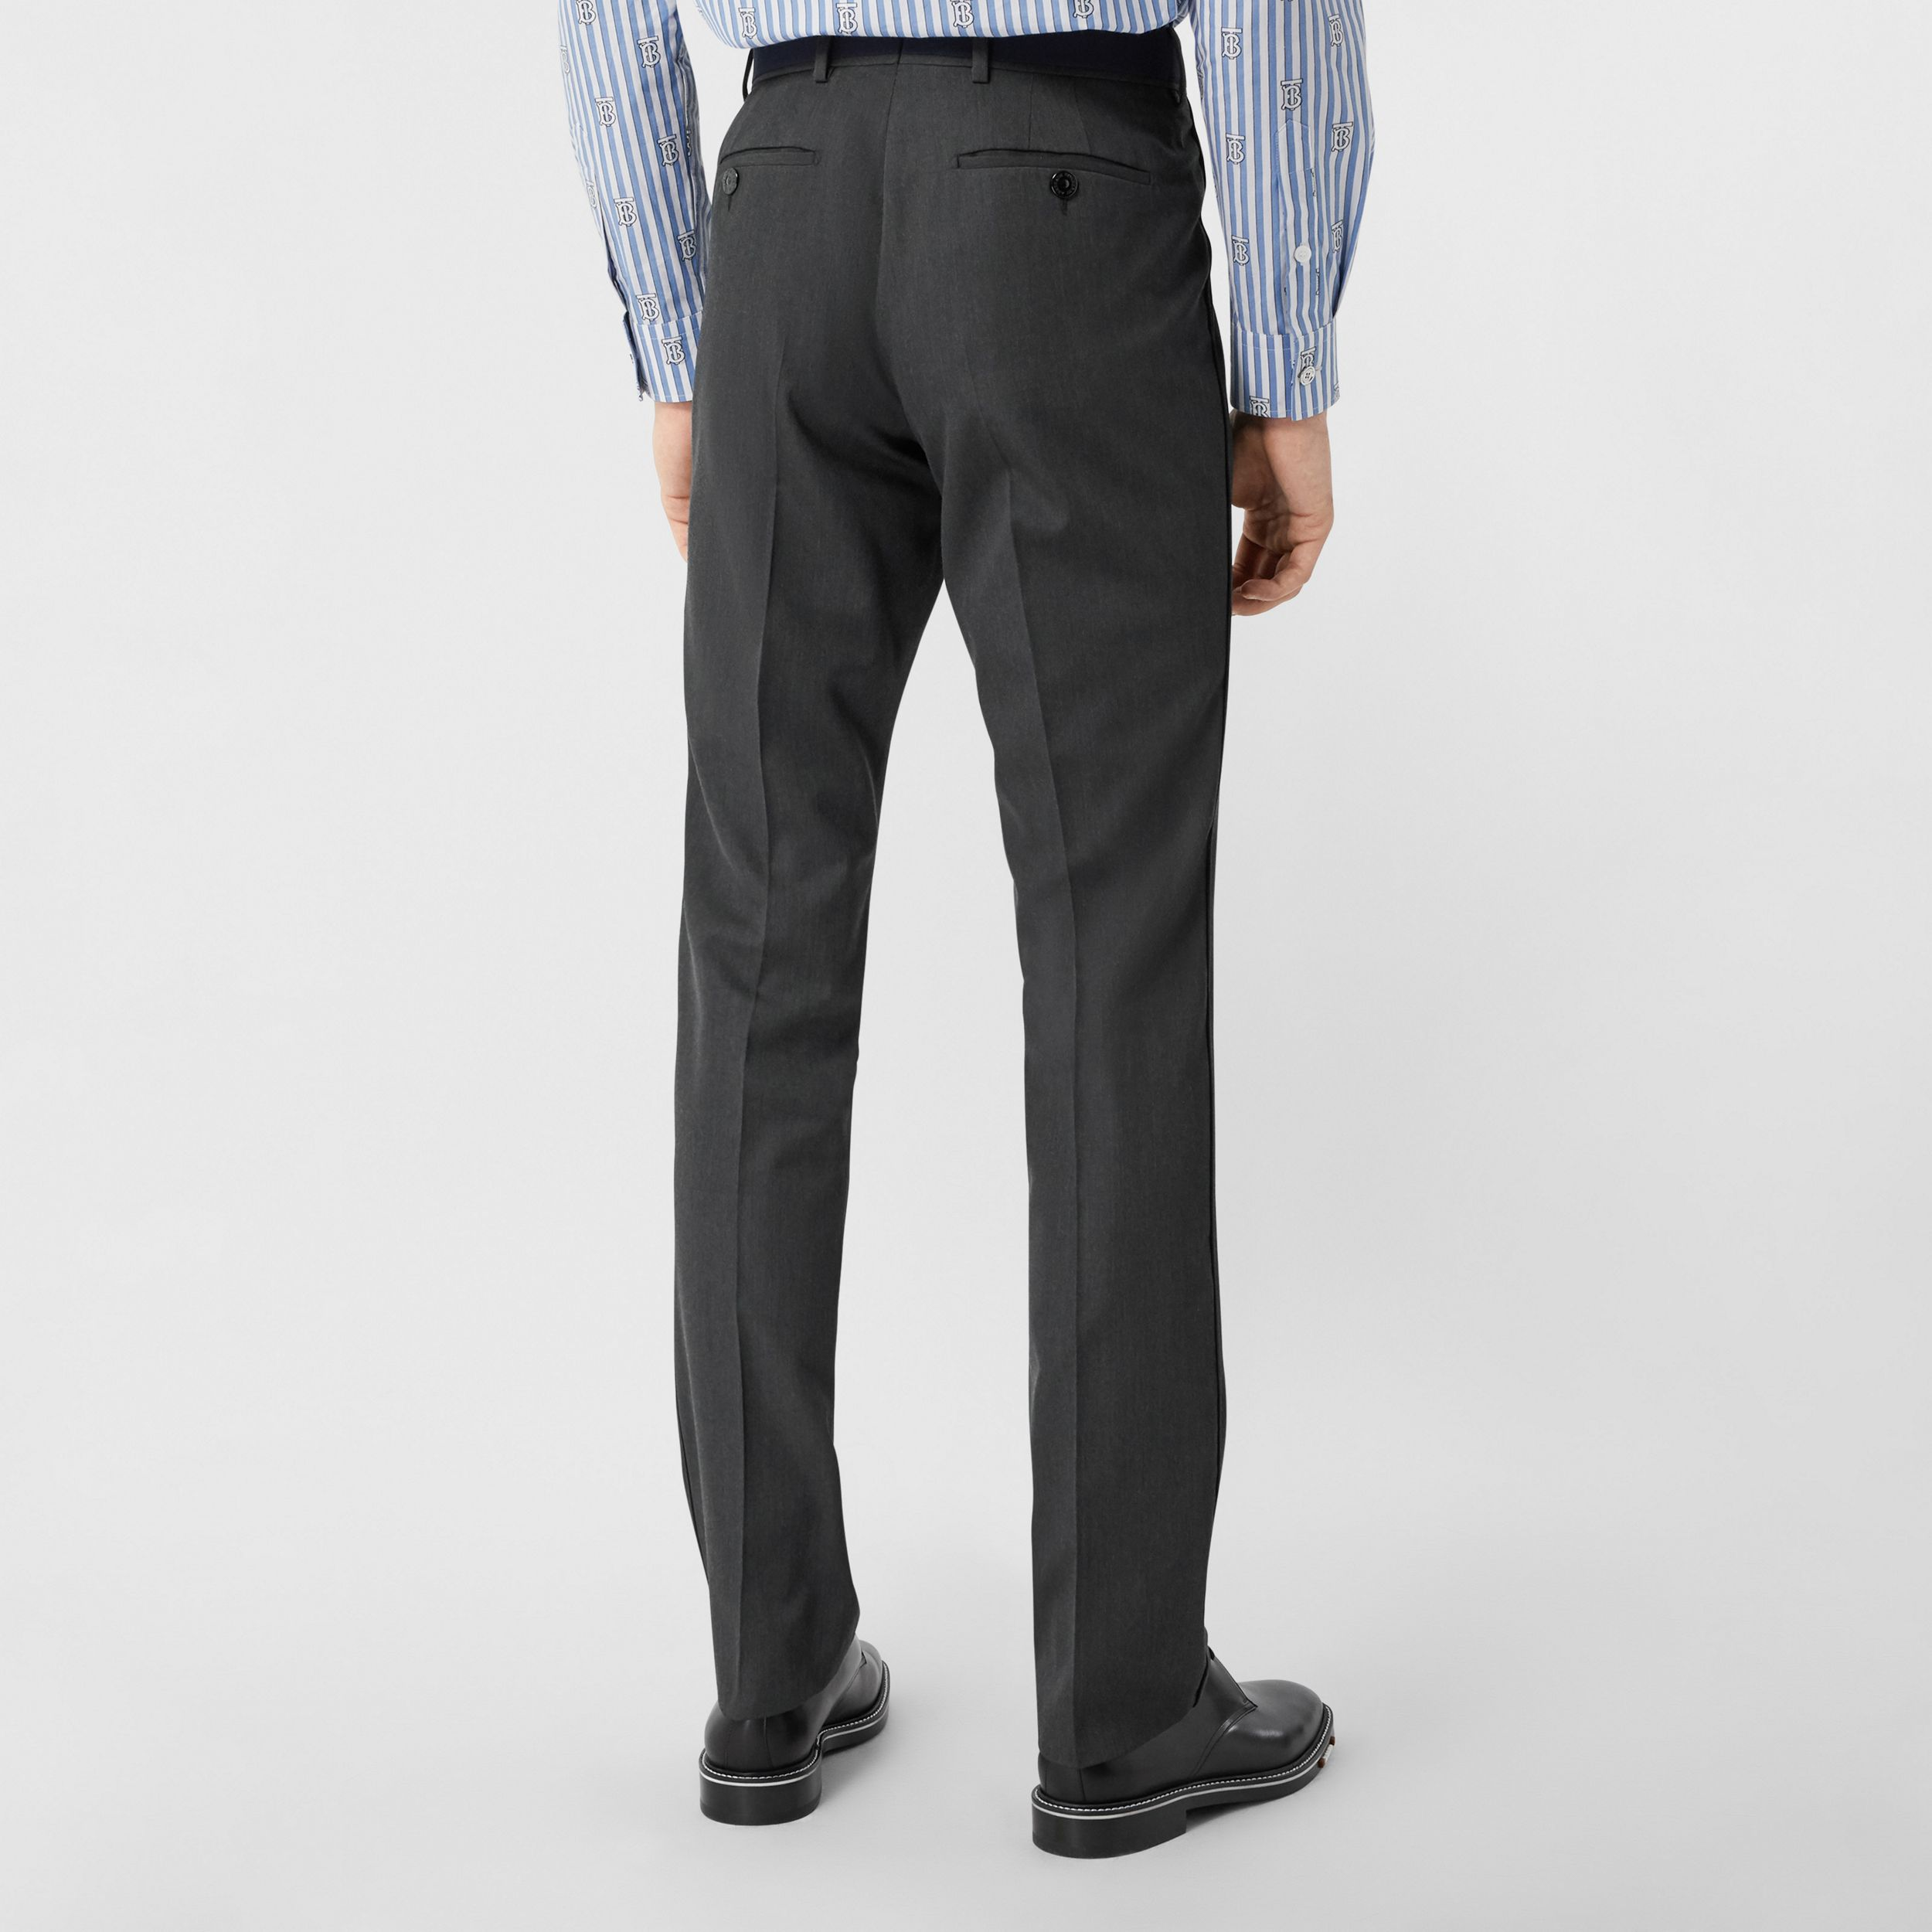 Classic Fit Panelled Wool Tailored Trousers in Charcoal - Men | Burberry - 3